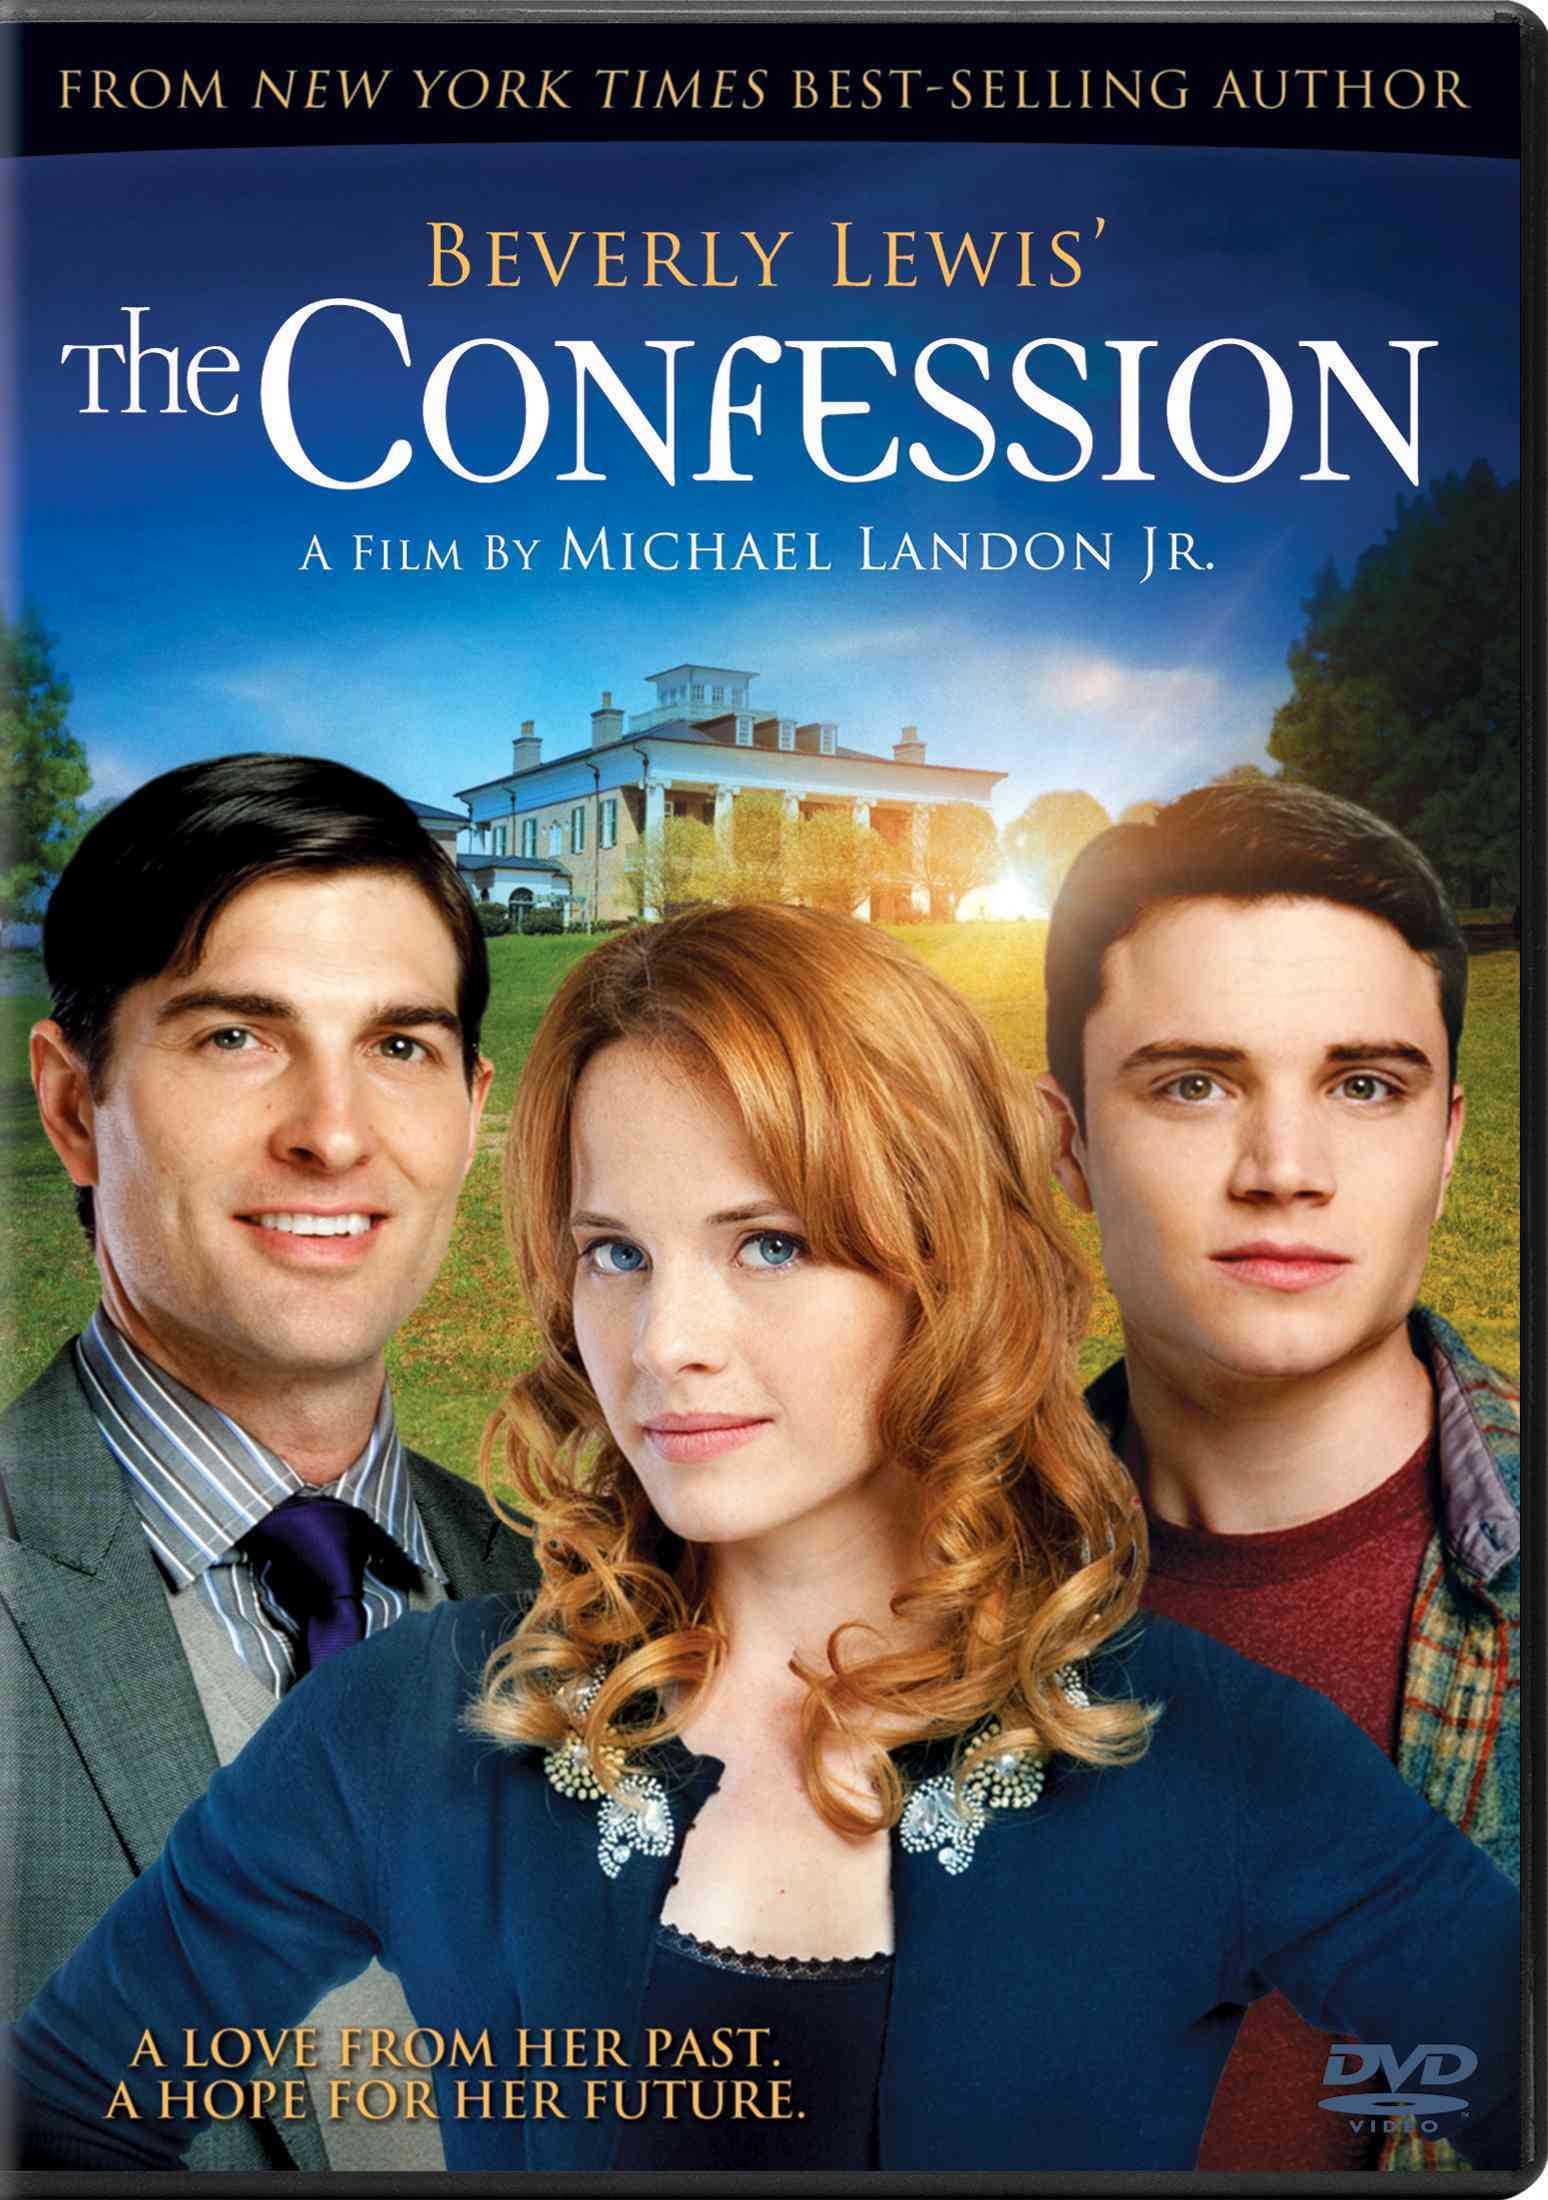 BEVERLY LEWIS THE CONFESSION BY OBERST,BILL JR. (DVD)